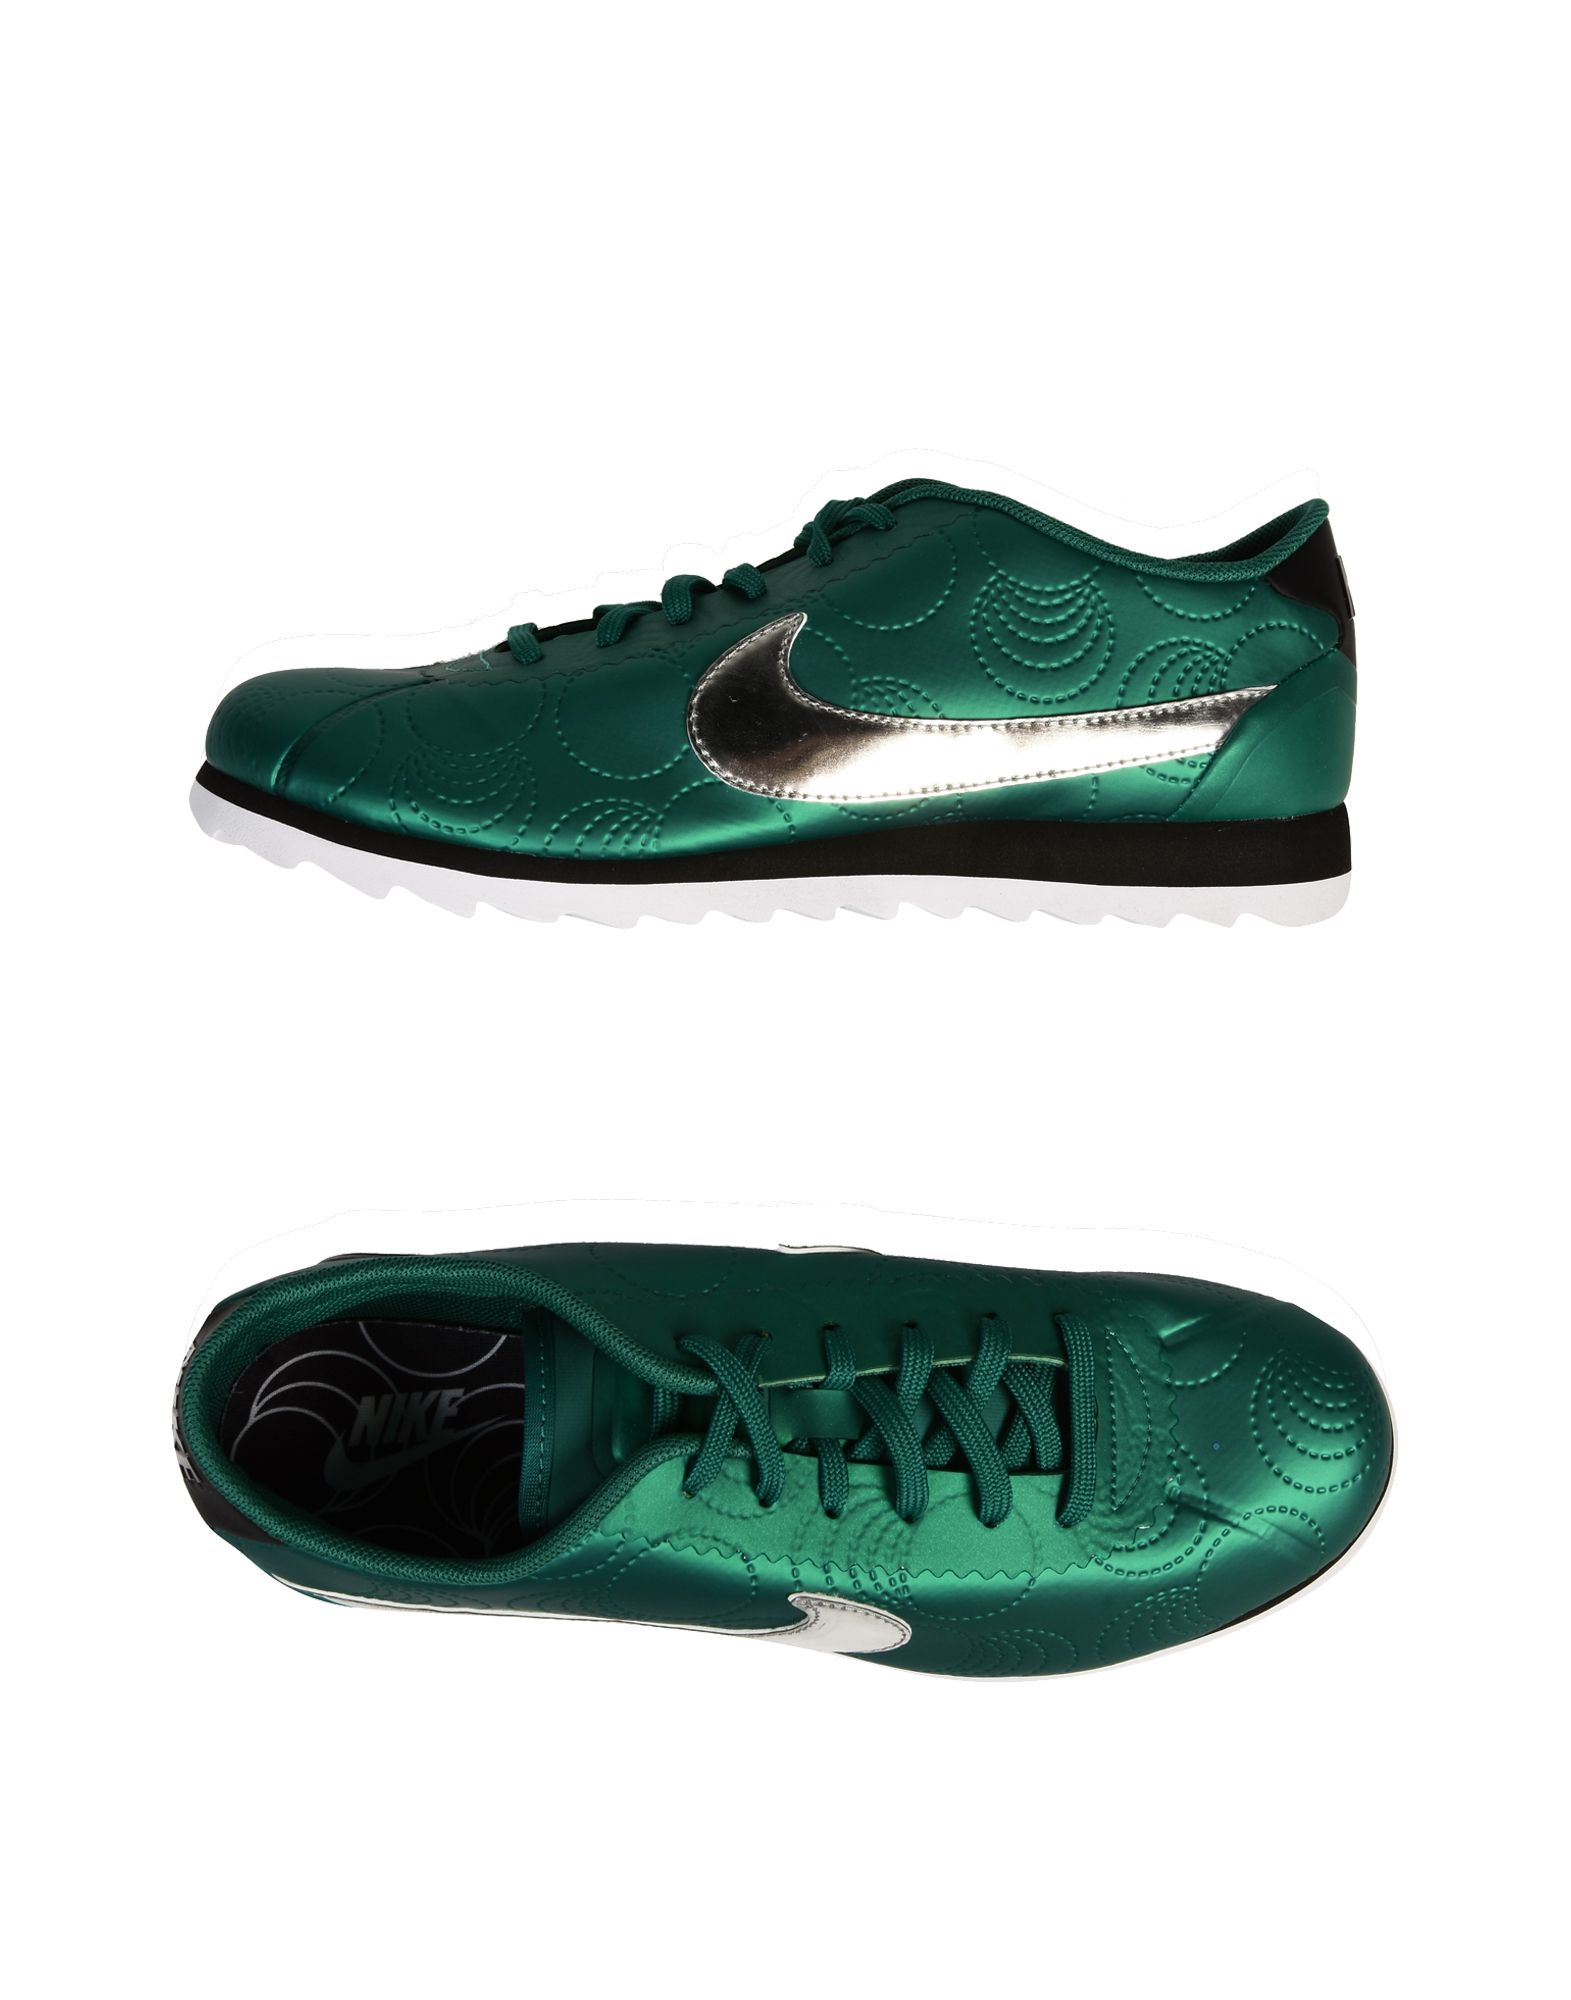 Sneakers Nike Wmns Cortez Ultra Lotc Qs - Donna - 11101191AM